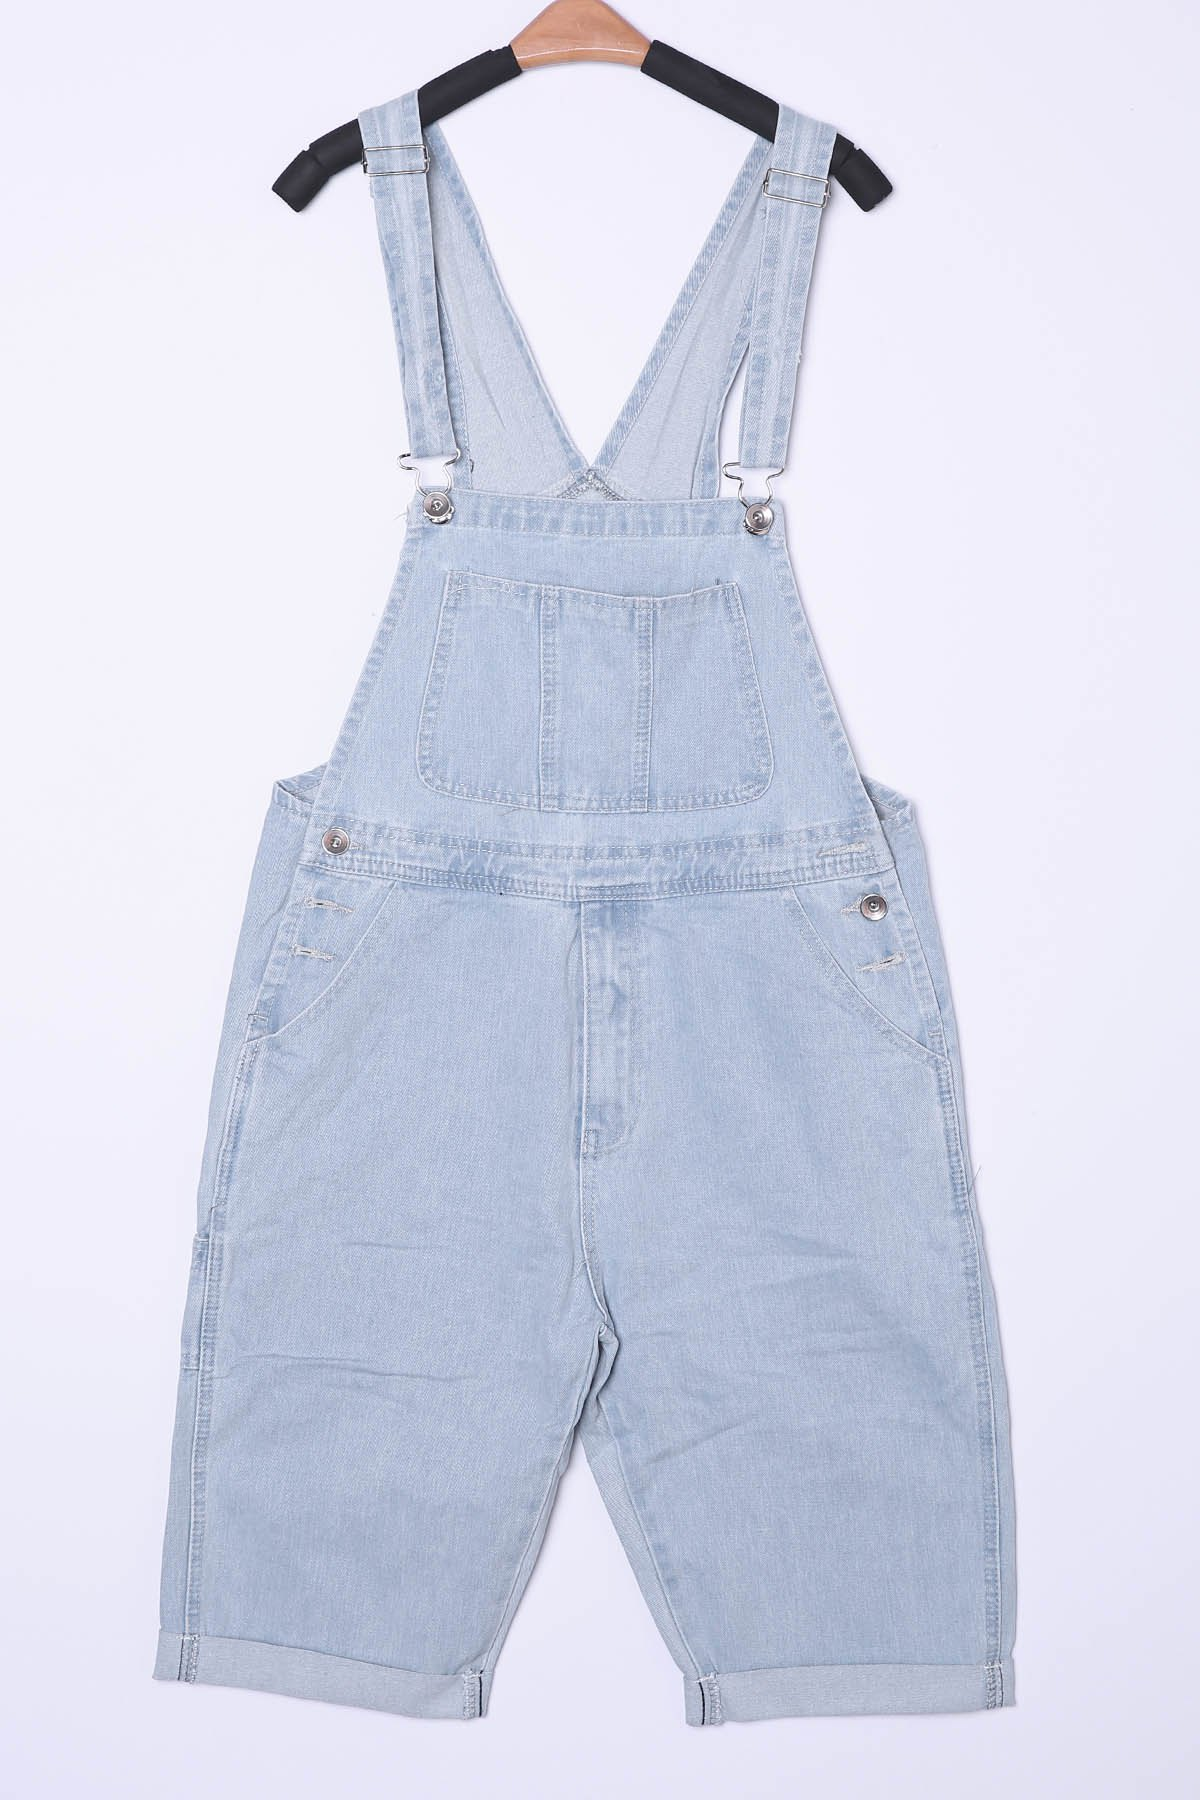 Laconic Loose Fit Straight Leg Patch Pocket Bleach Wash Men's Denim Overalls Shorts - LIGHT BLUE XL